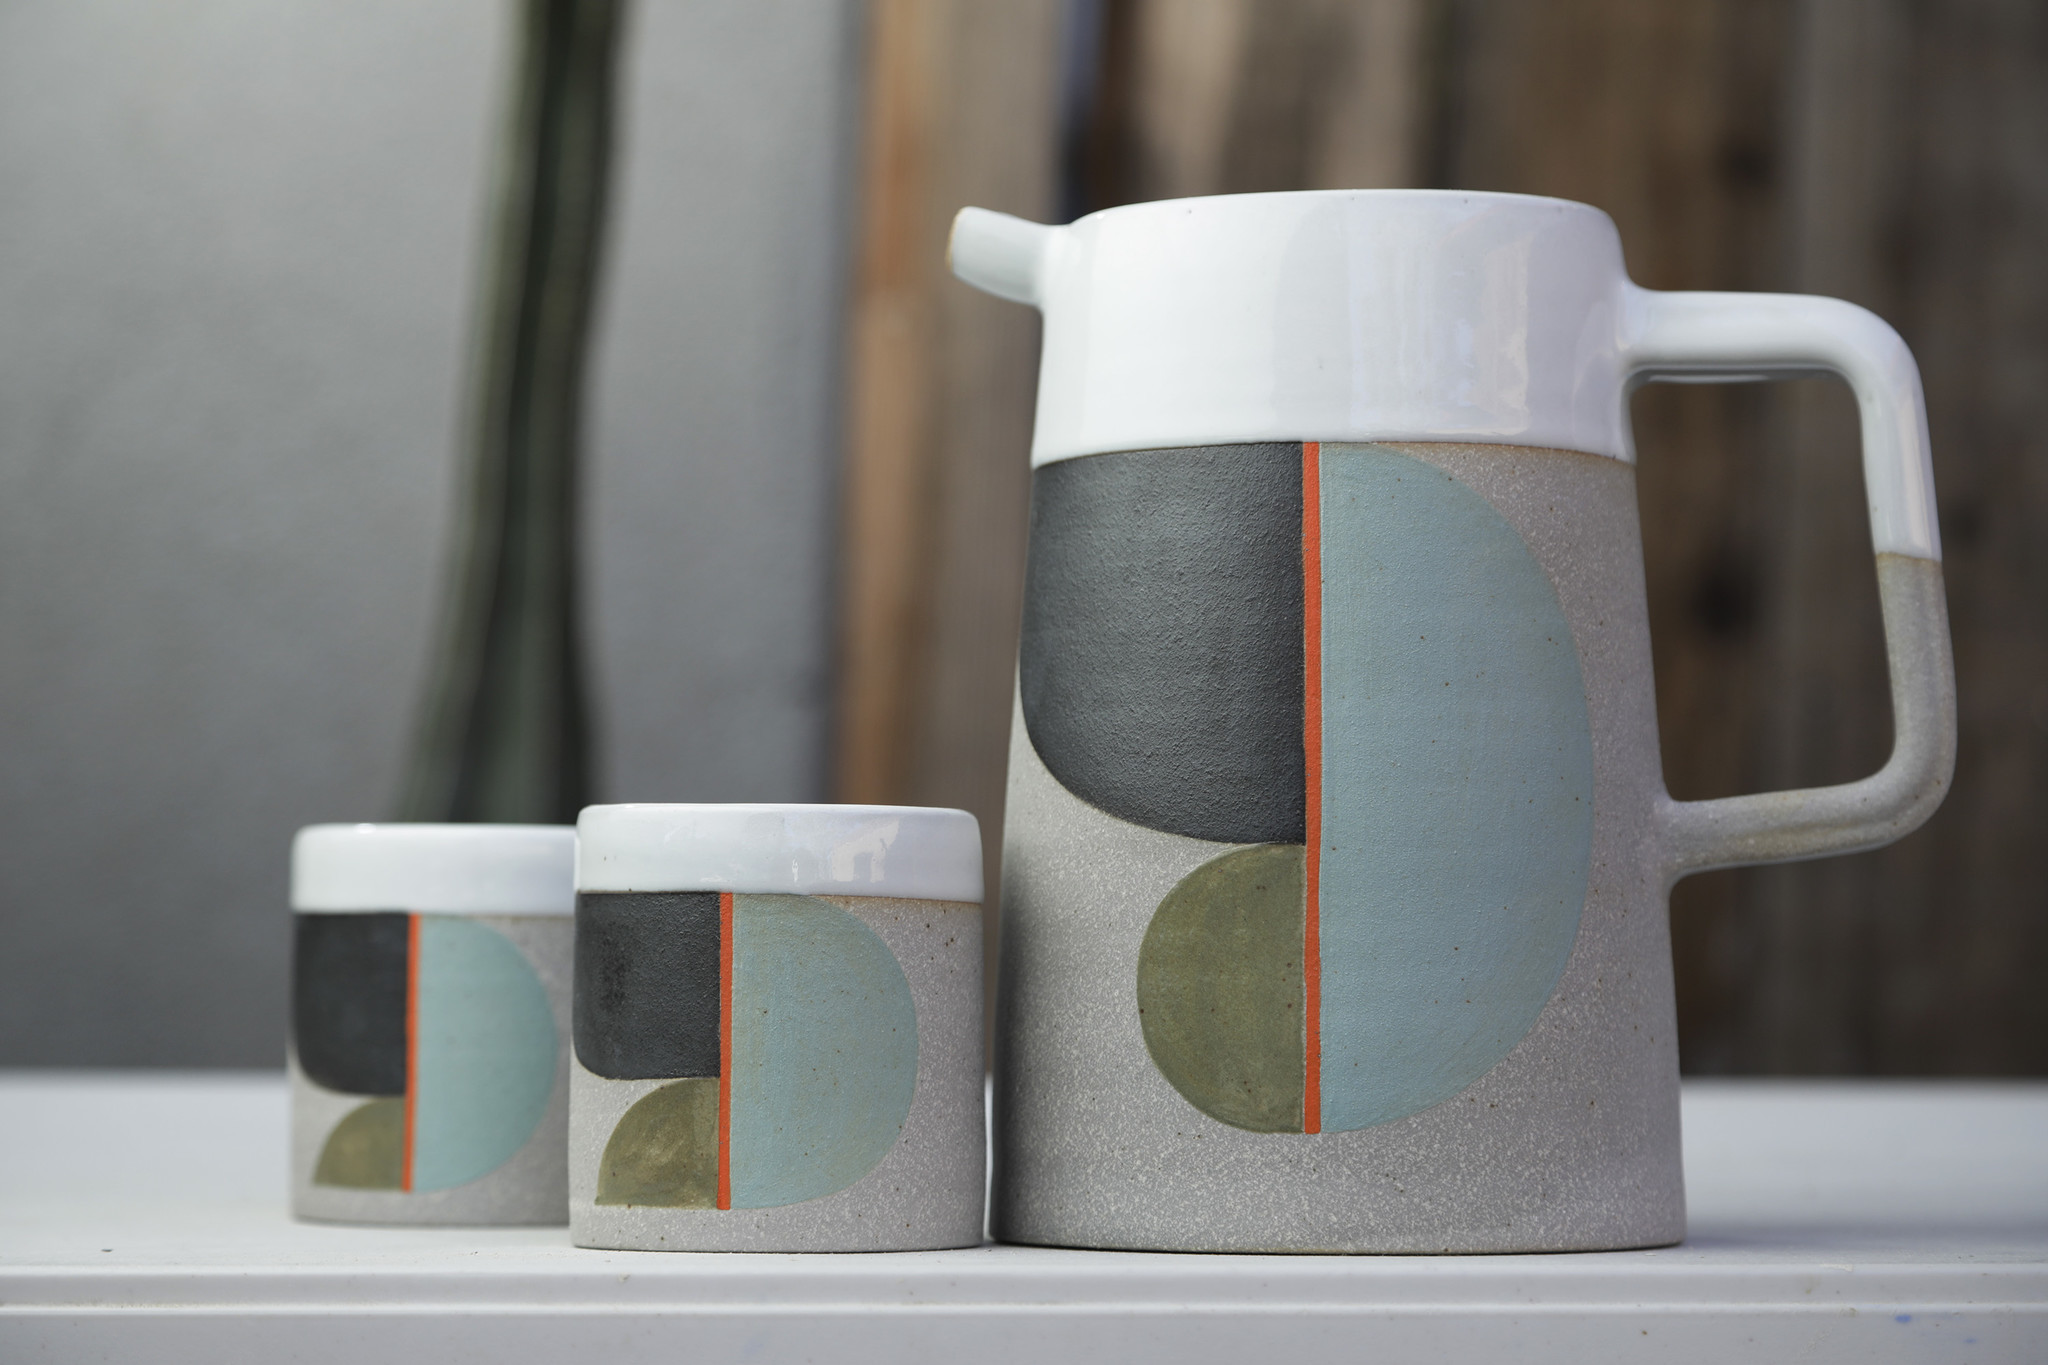 WOODLAND HILLS, CA -- OCTOBER 09, 2018: Pitcher and cups by ceramist Pawena Thimaporn. Her products